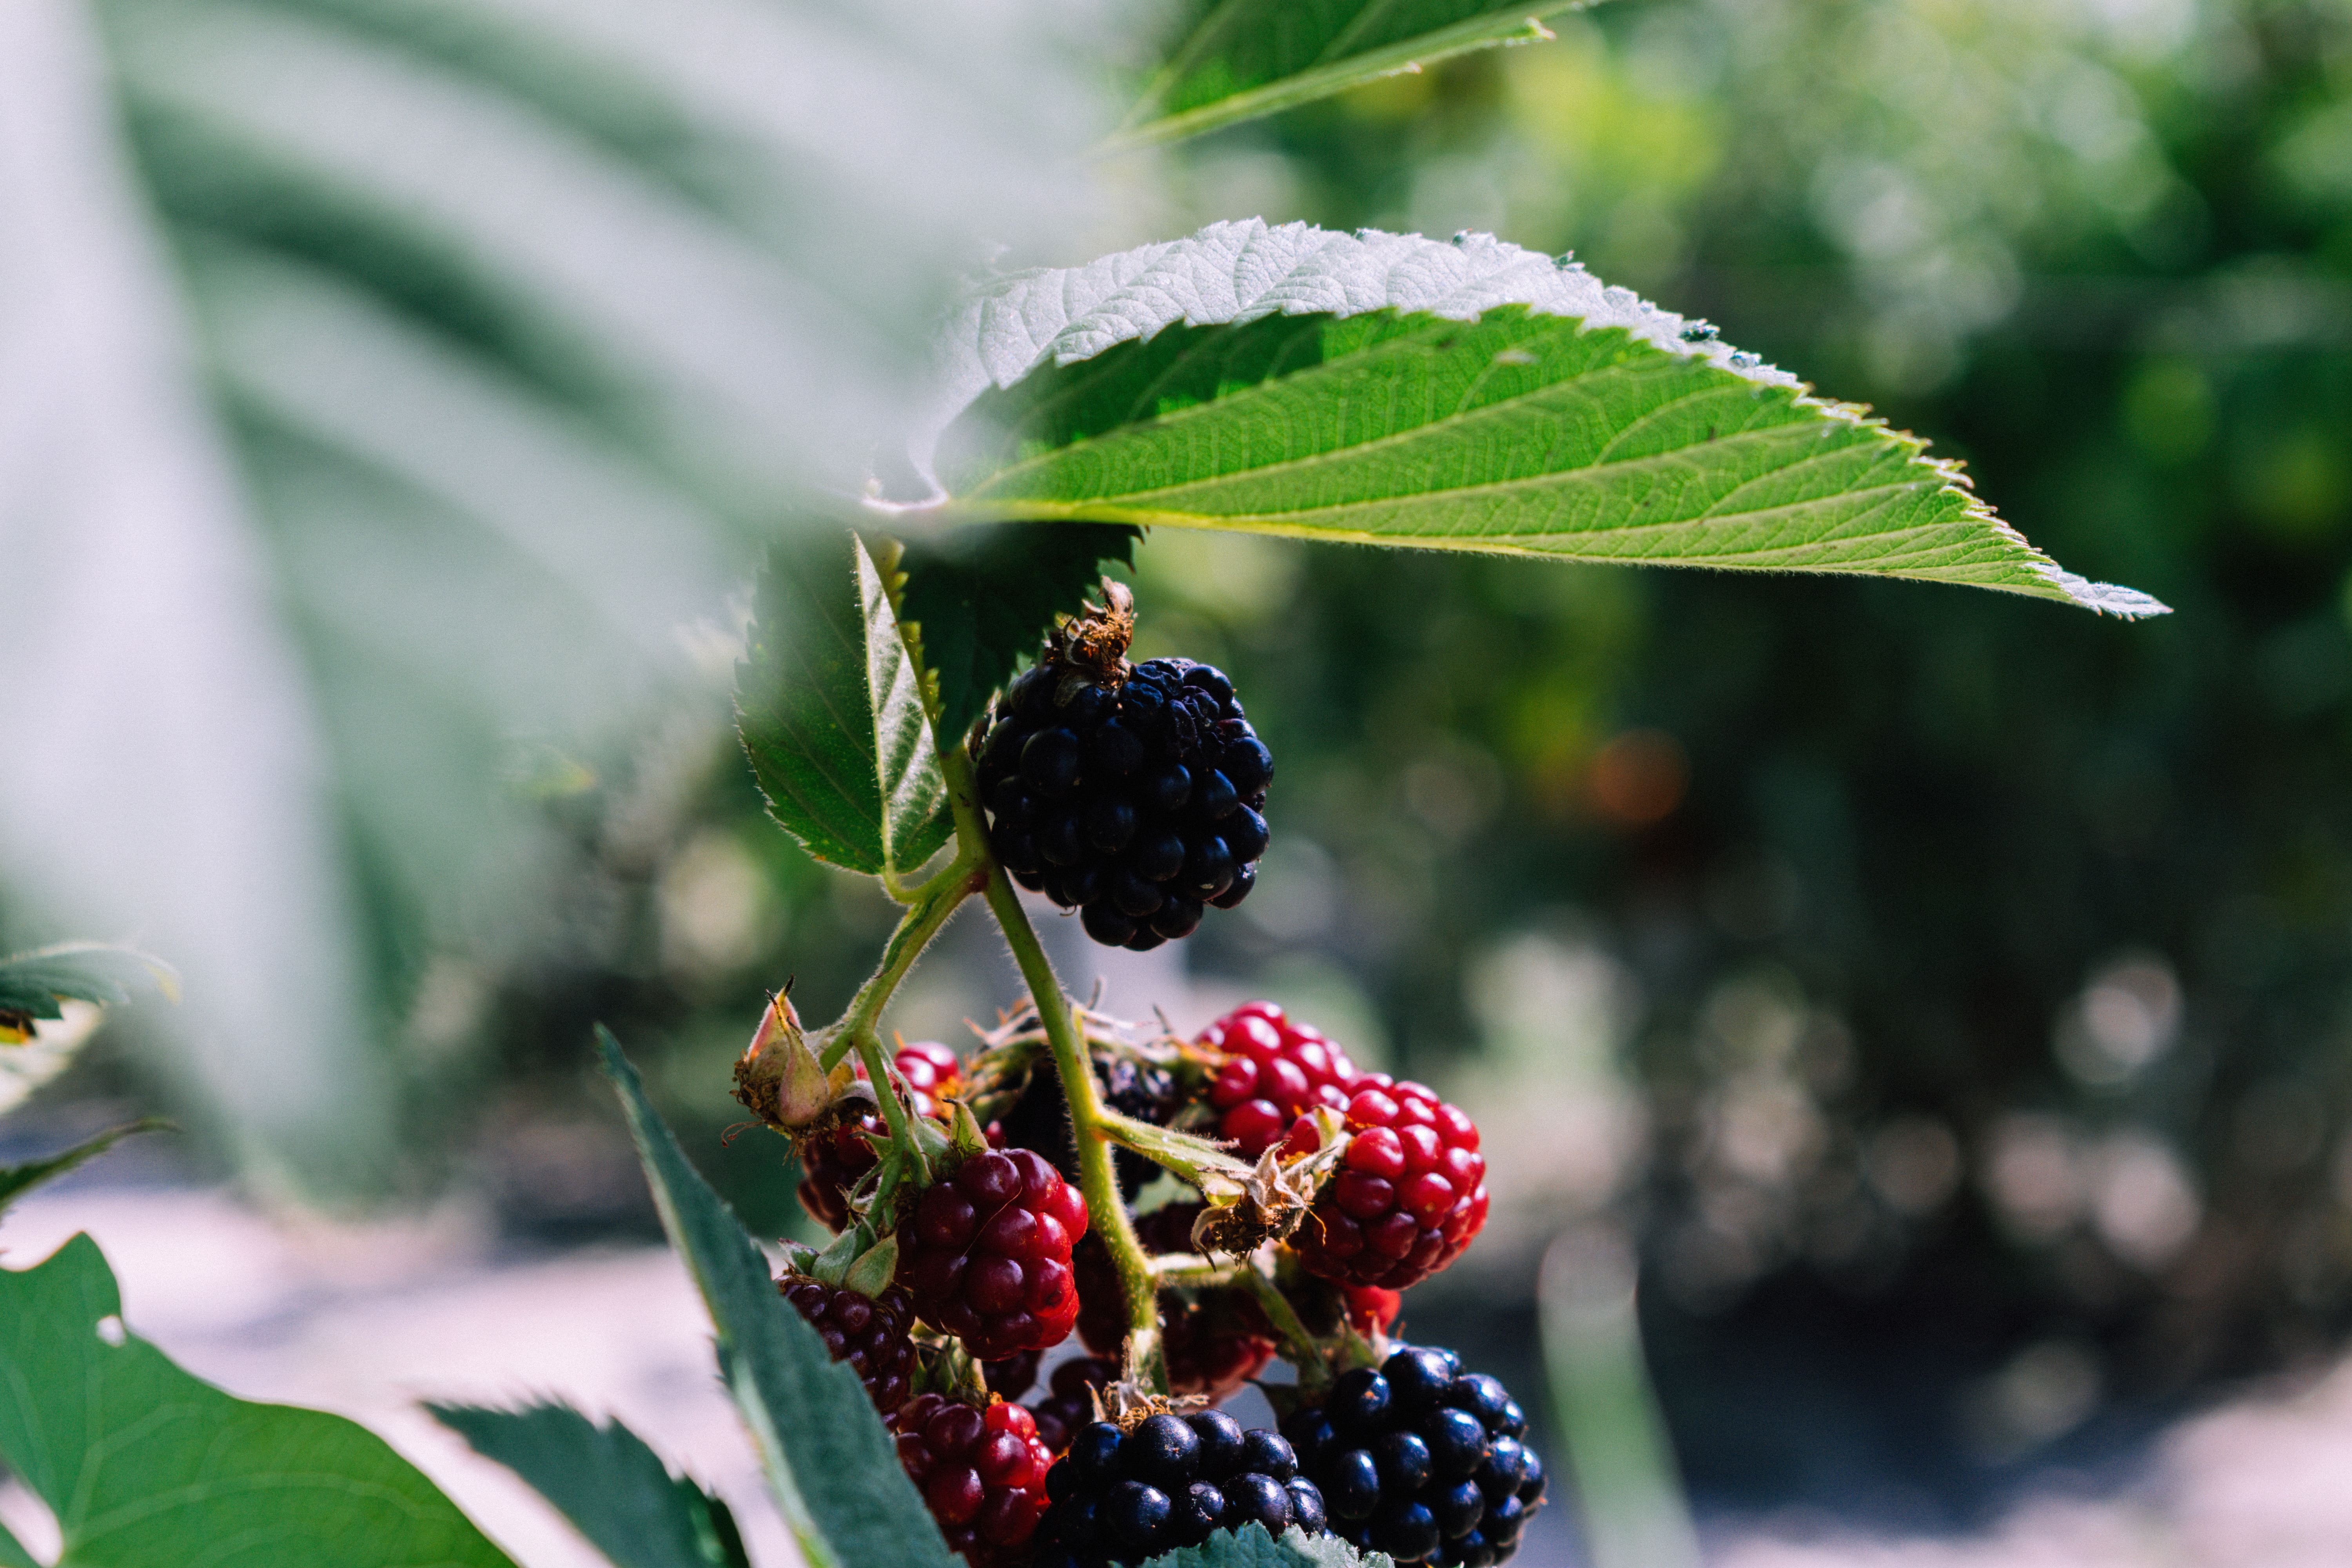 Weight Loss And The Hype About The Acai Berry